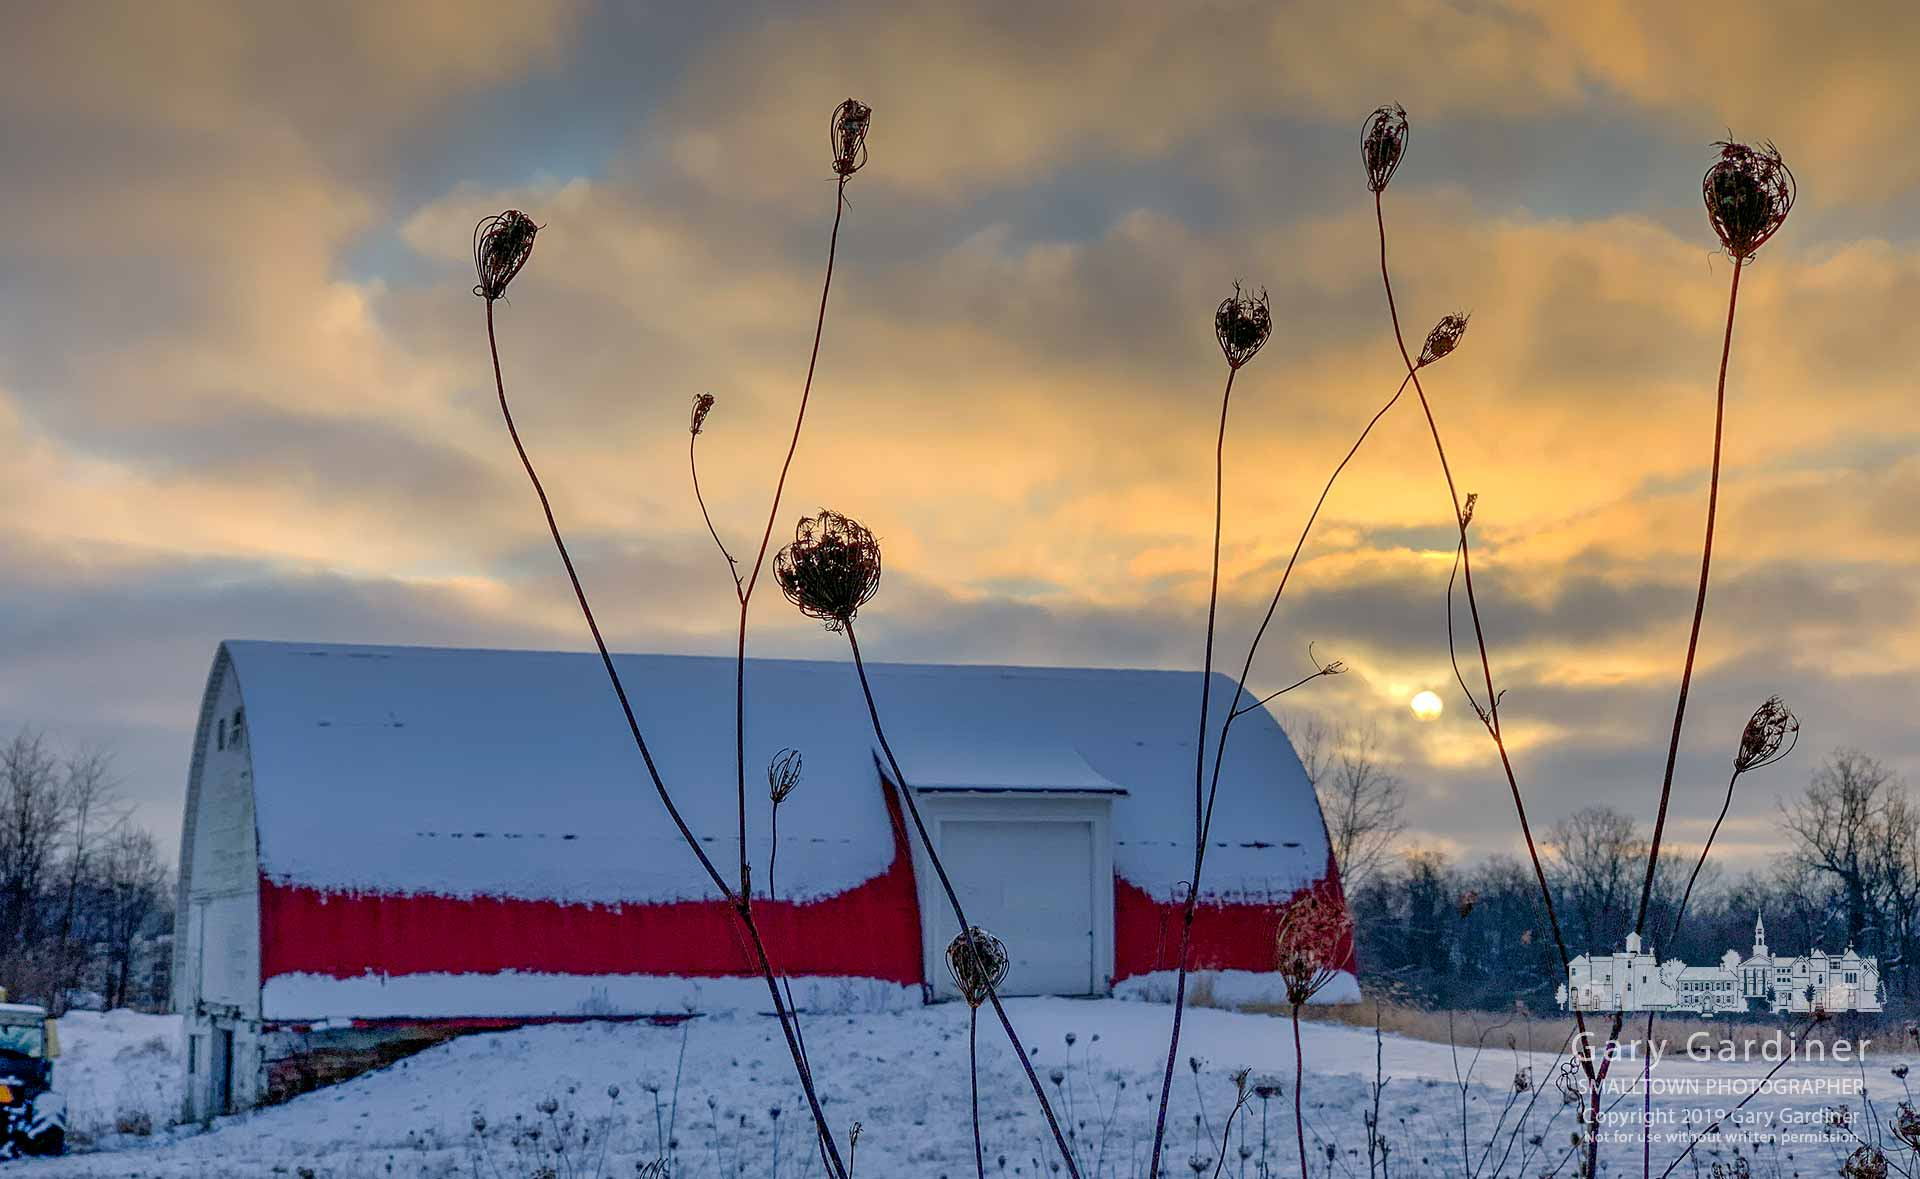 The morning sun rises behind the barn at the Braun Farm property on a cold winter day. My Final Photo for Jan. 14, 2019.